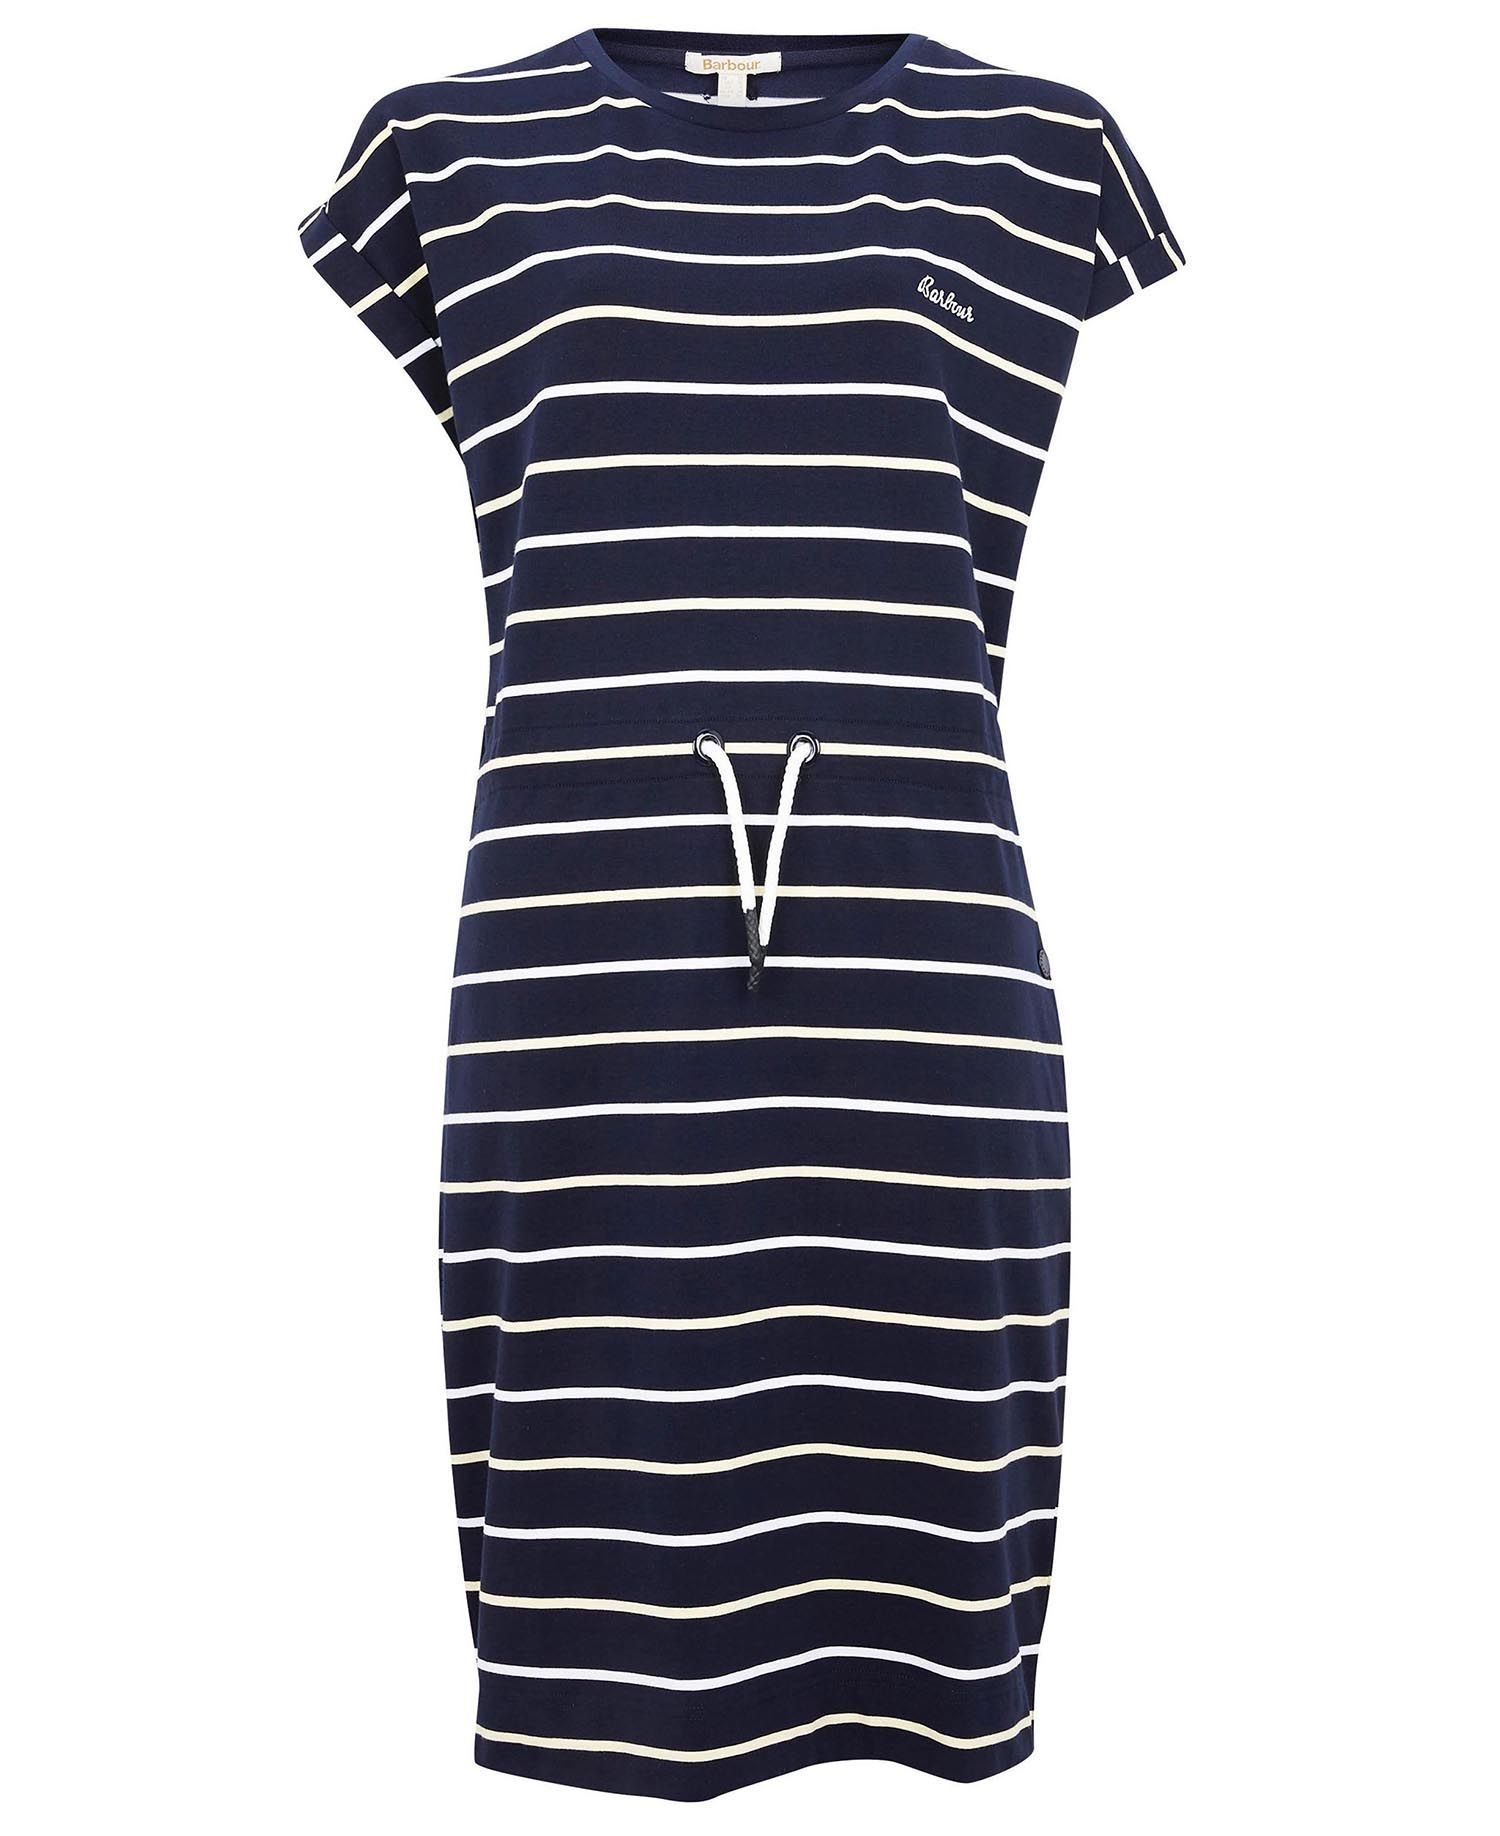 Barbour Barbour Marloes Stripe Dress Barbour Lifestyle: Regular Fit